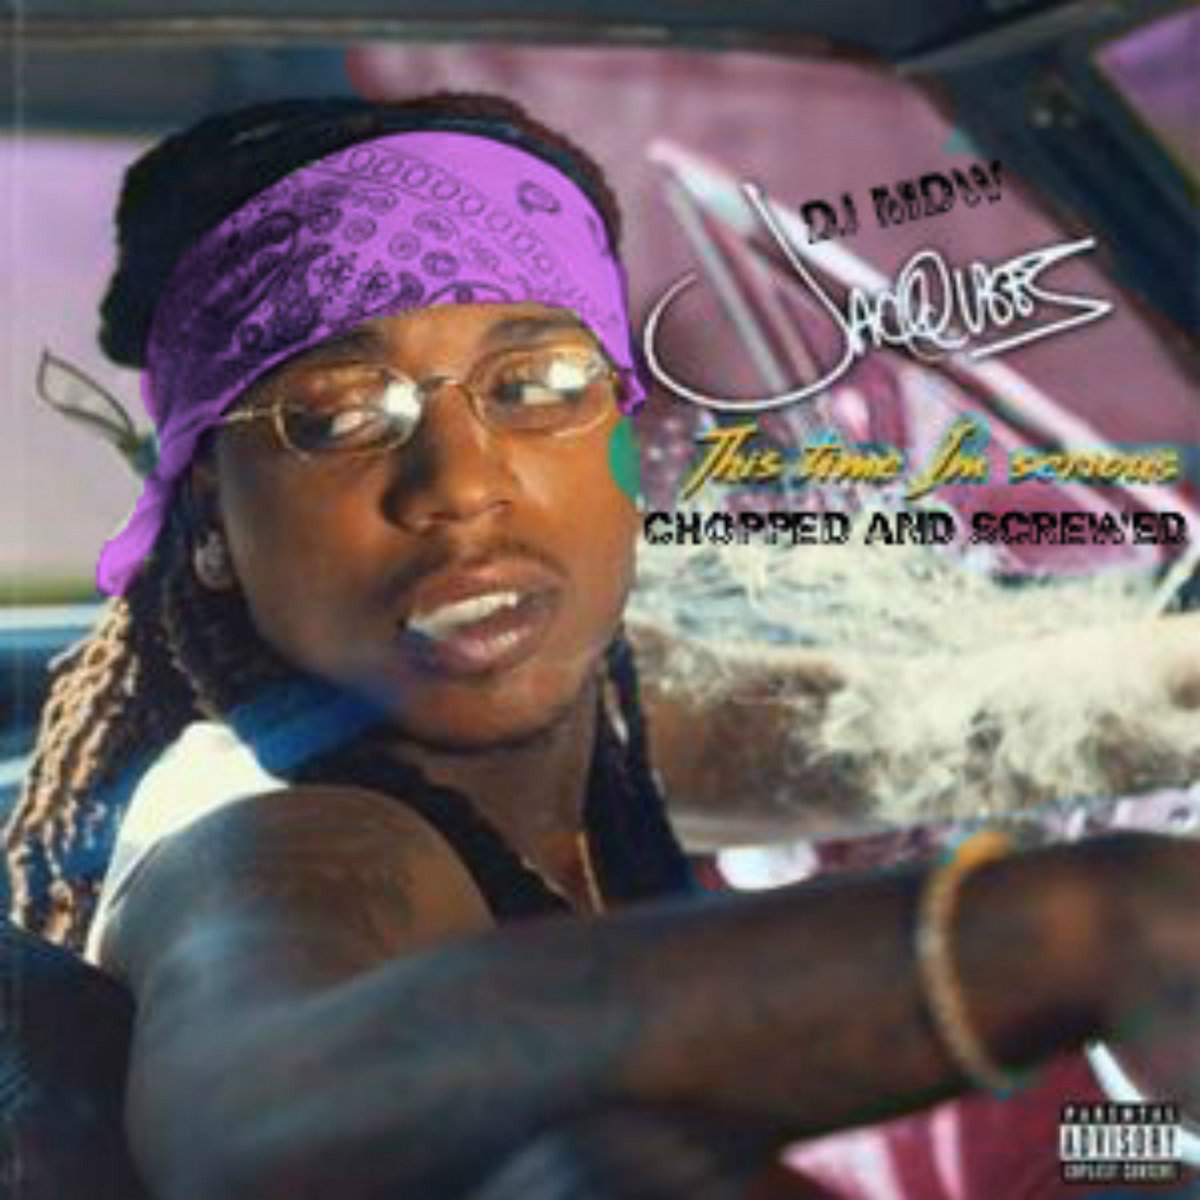 Jacquees This Time I M Serious Chopped And Screwed By Dj Mdw Jacquees And Dj Mdw Dj Mdw